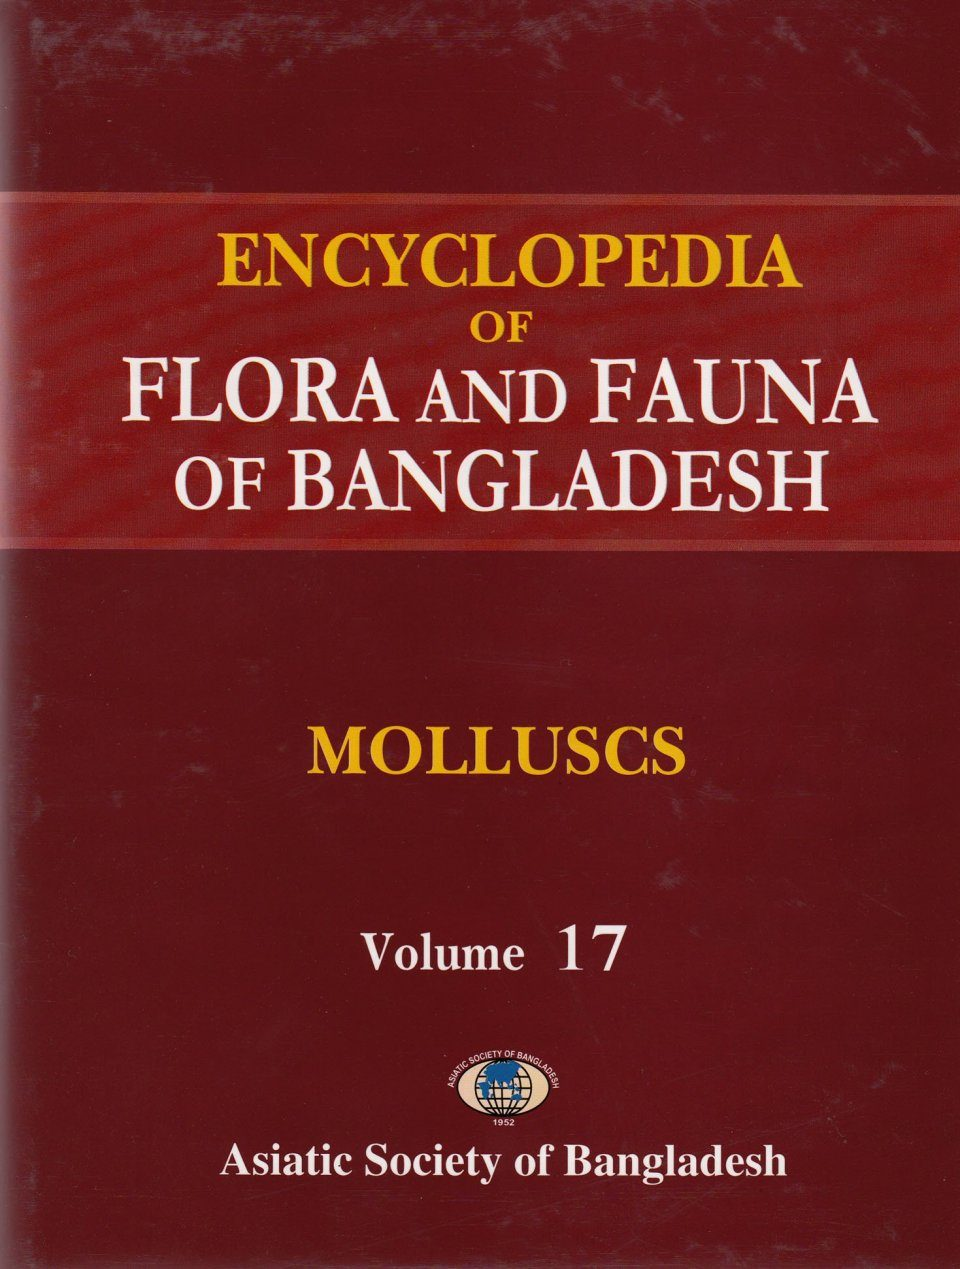 Encyclopedia of Flora and Fauna of Bangladesh, Volume 17: Molluscs